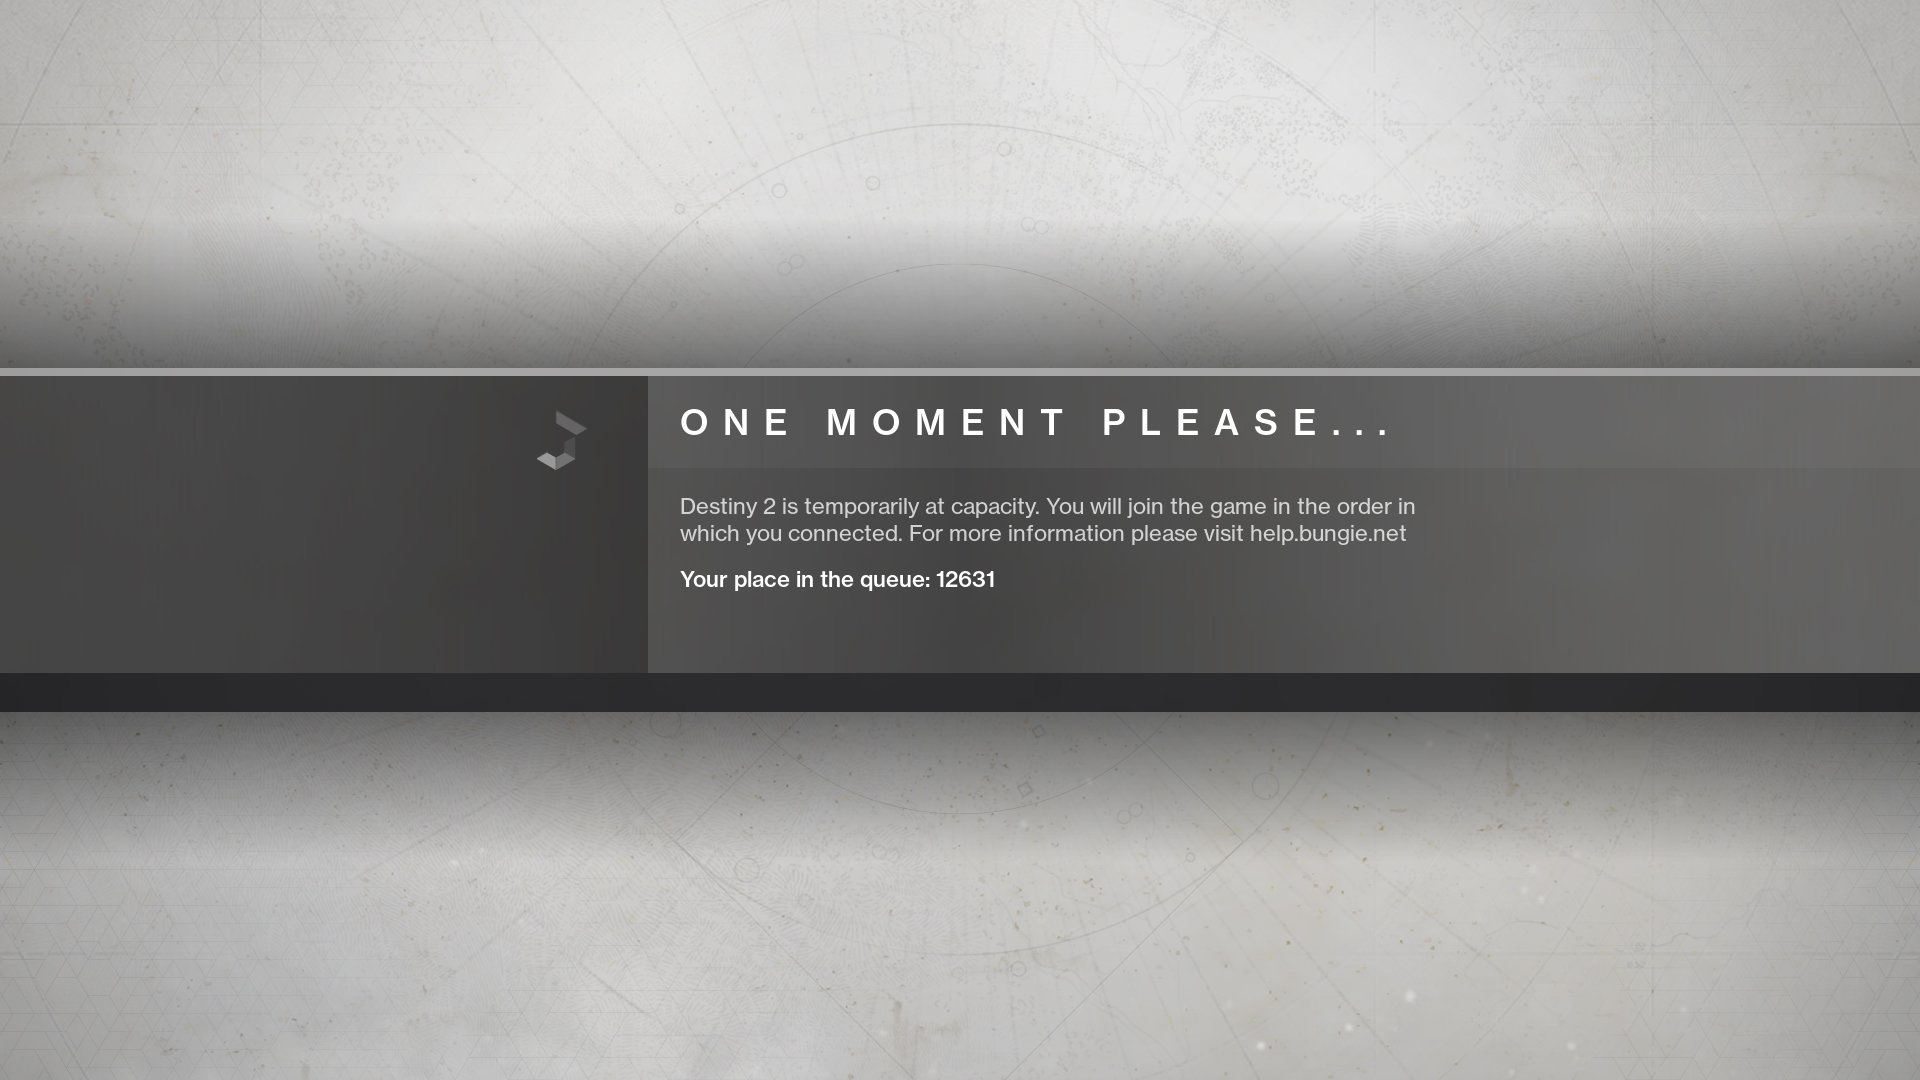 how long will Destiny 2 be down